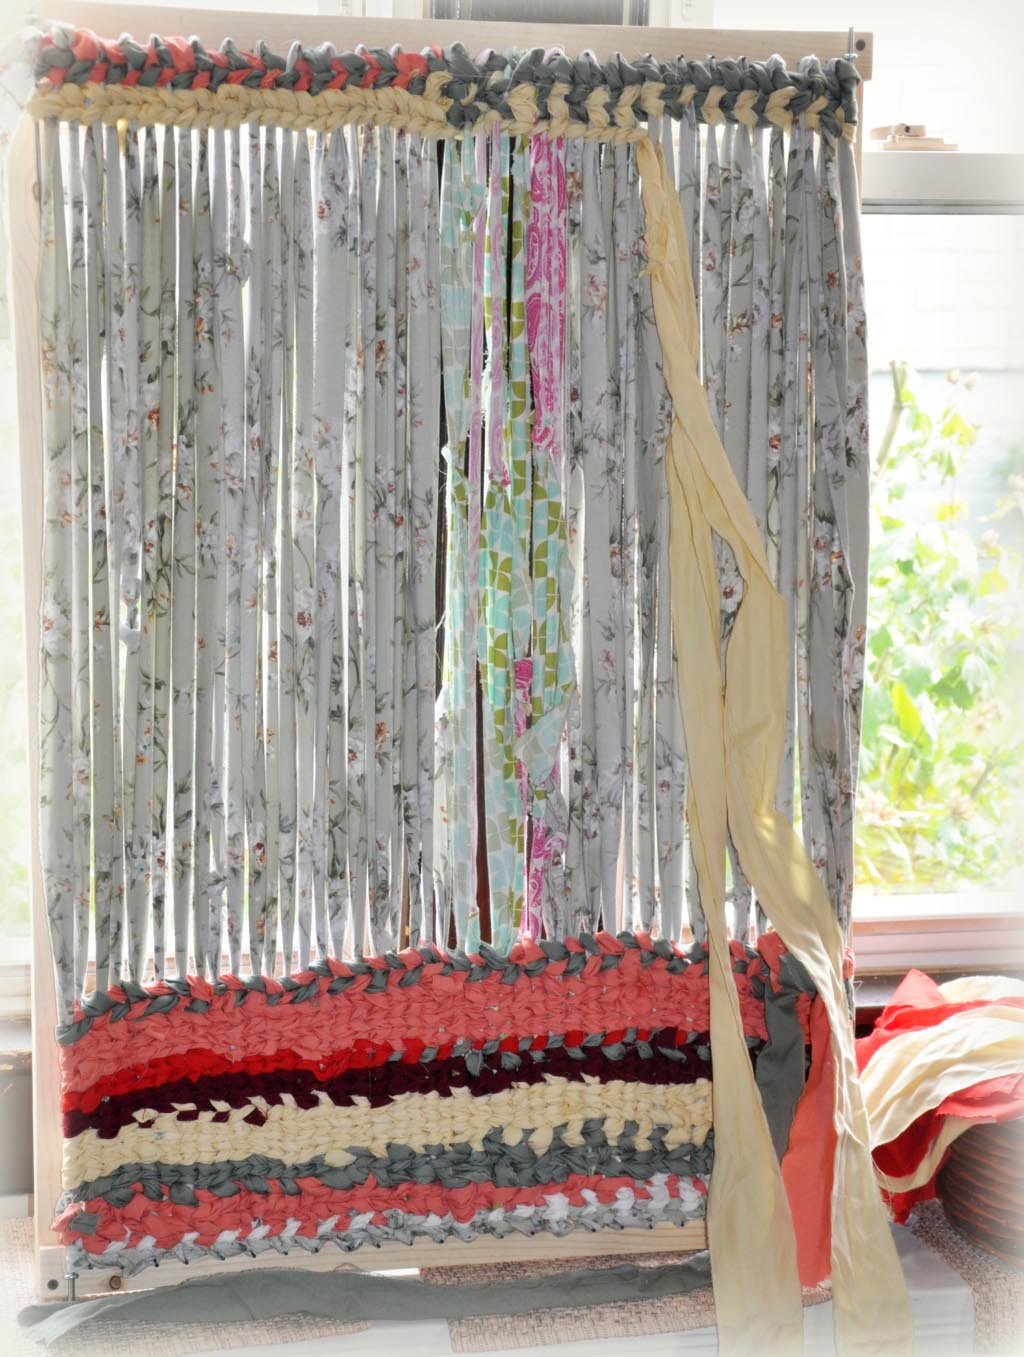 Diy Rag Rug Loom Home Decor